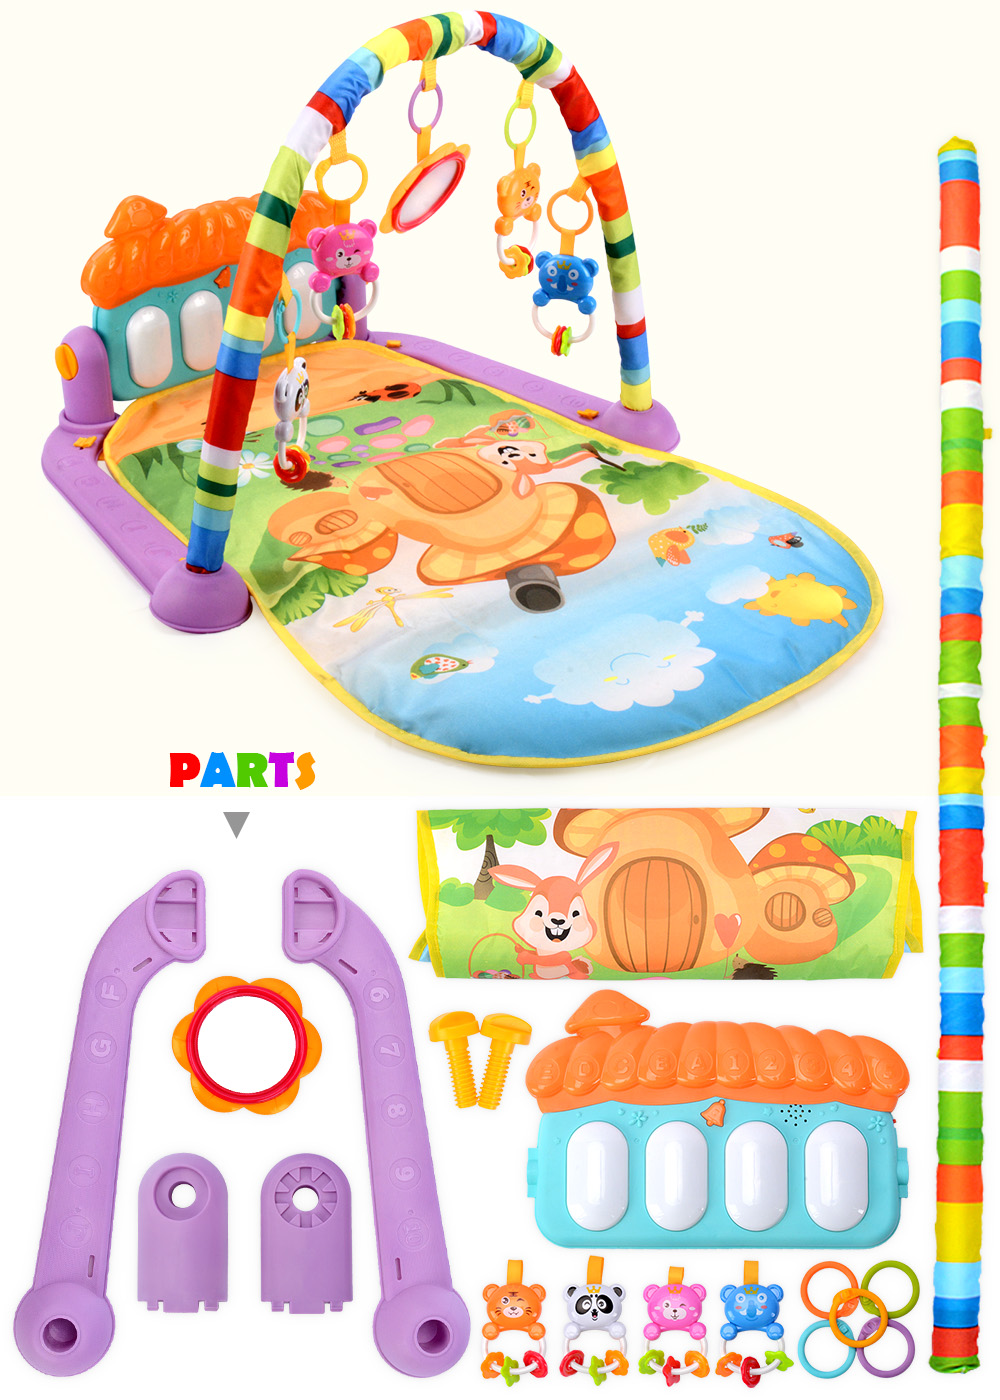 Ha770b4ea36804a49968f339ff3998266p 16 Styles Baby Music Rack Play Mat Kid Rug Puzzle Carpet Piano Keyboard Infant Playmat Early Education Gym Crawling Game Pad Toy